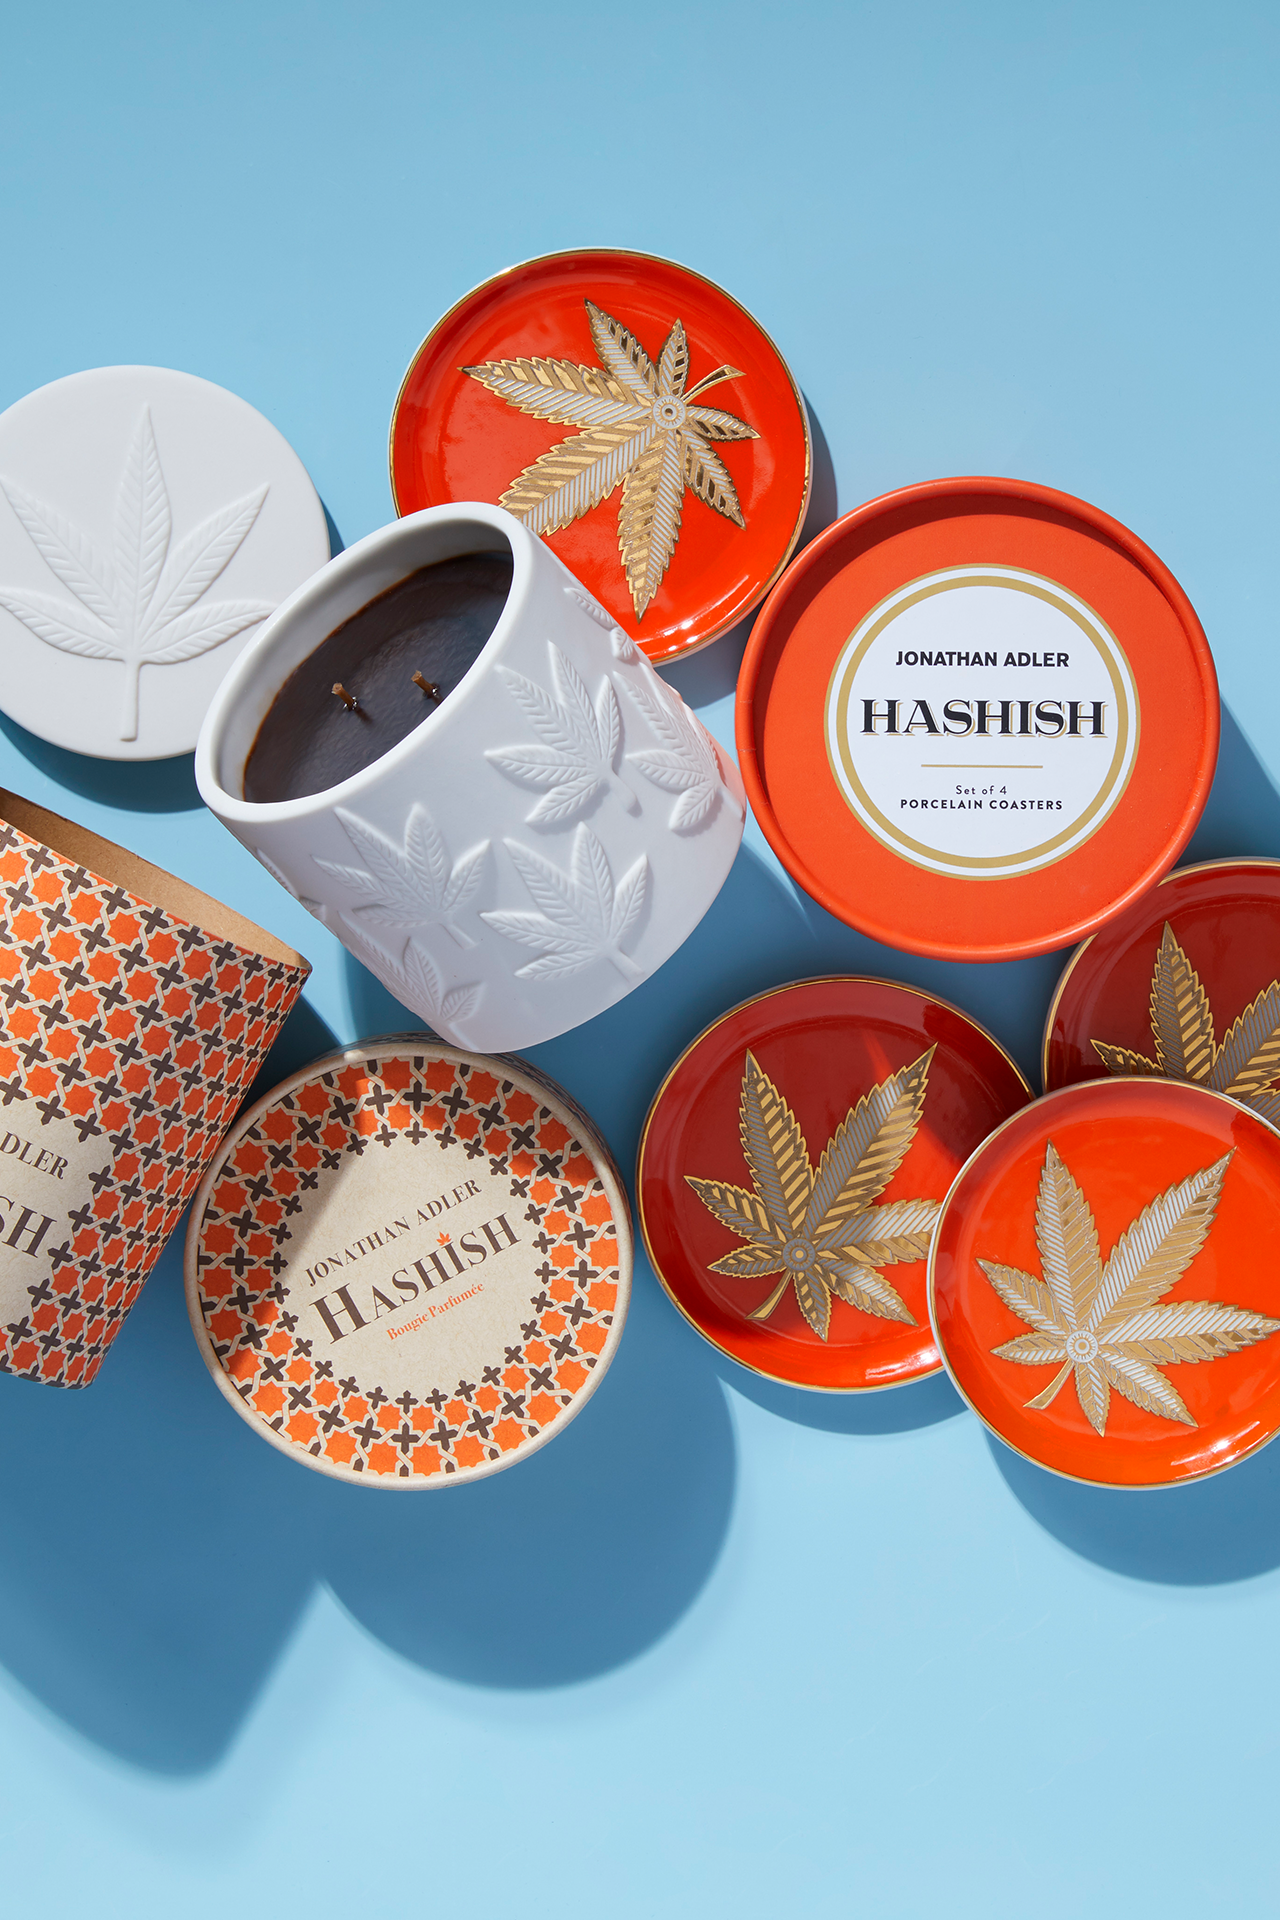 Second Lifestyle Image with Hashish Coasters